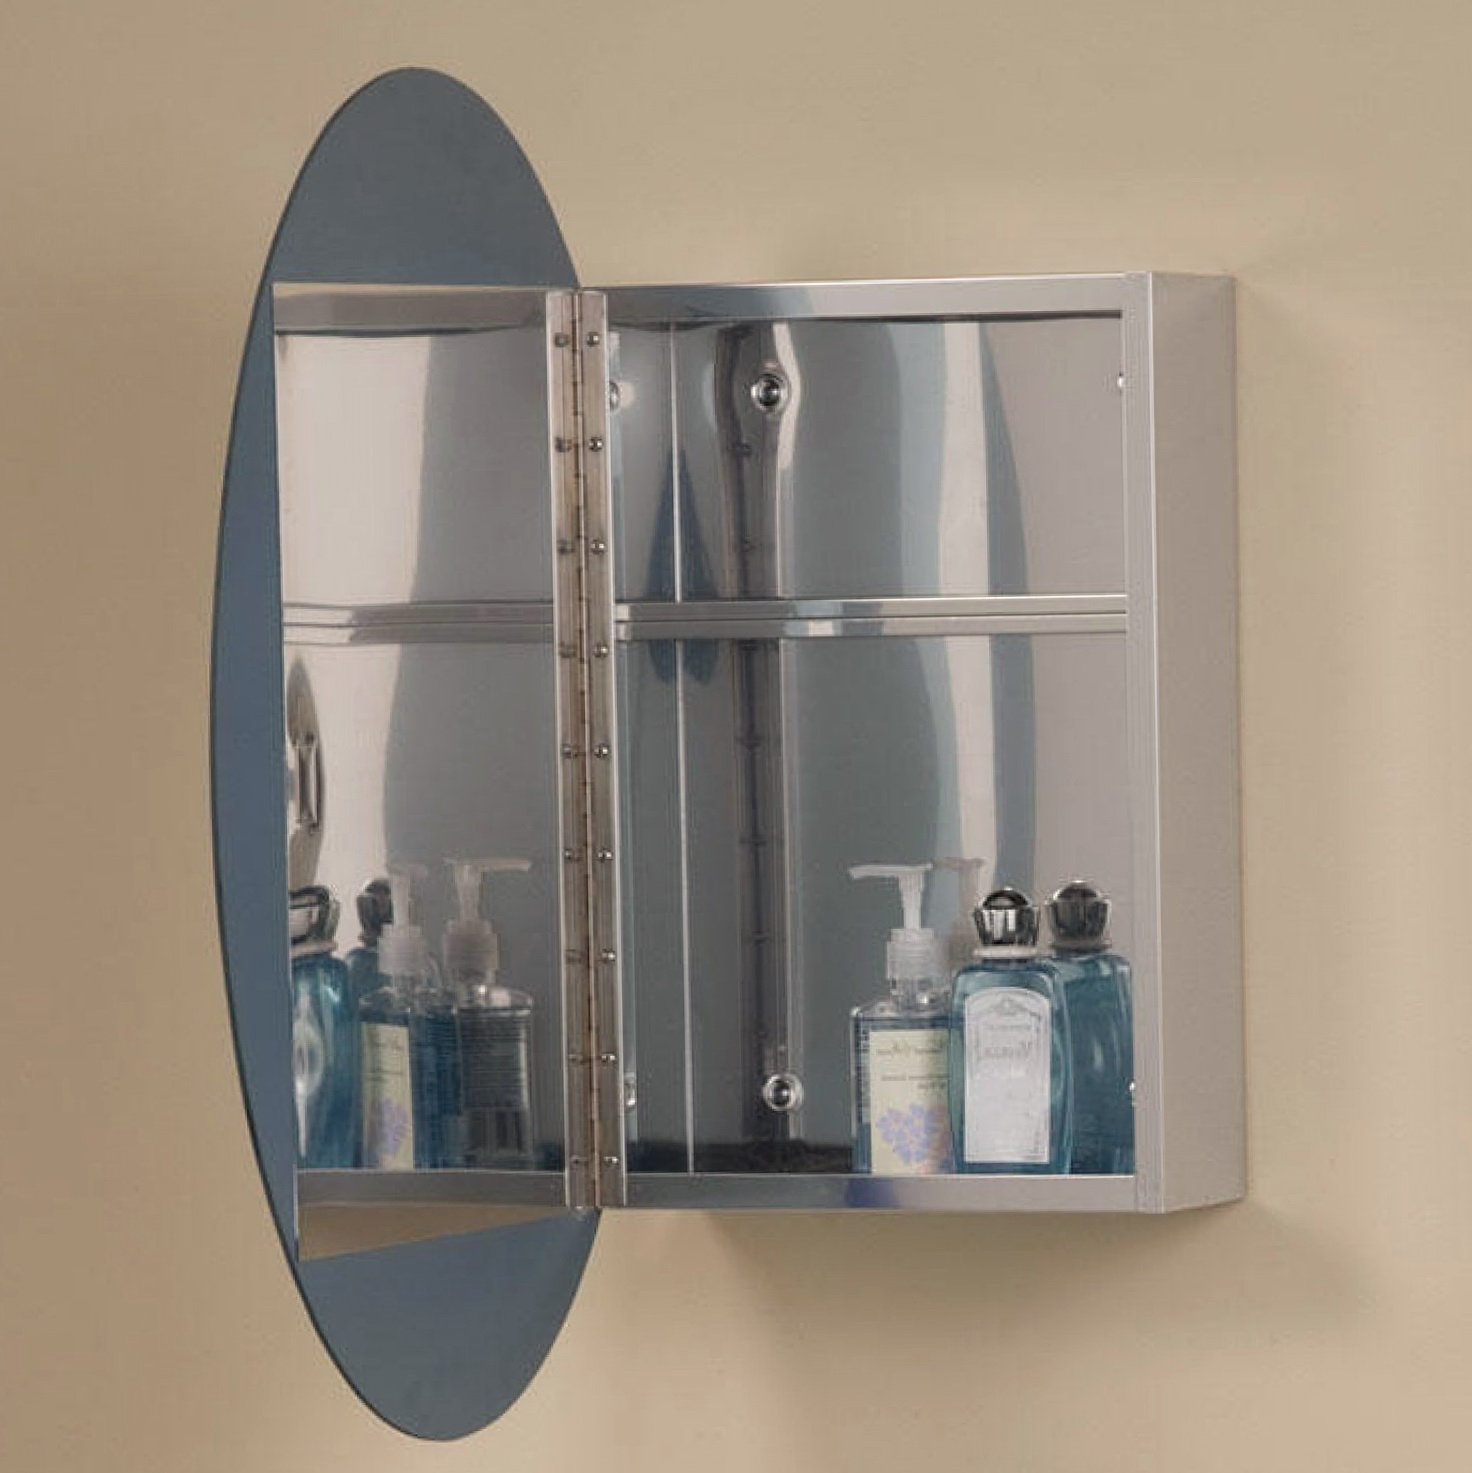 Oval bathroom mirrors with medicine cabinet home design ideas Oval bathroom mirror cabinet